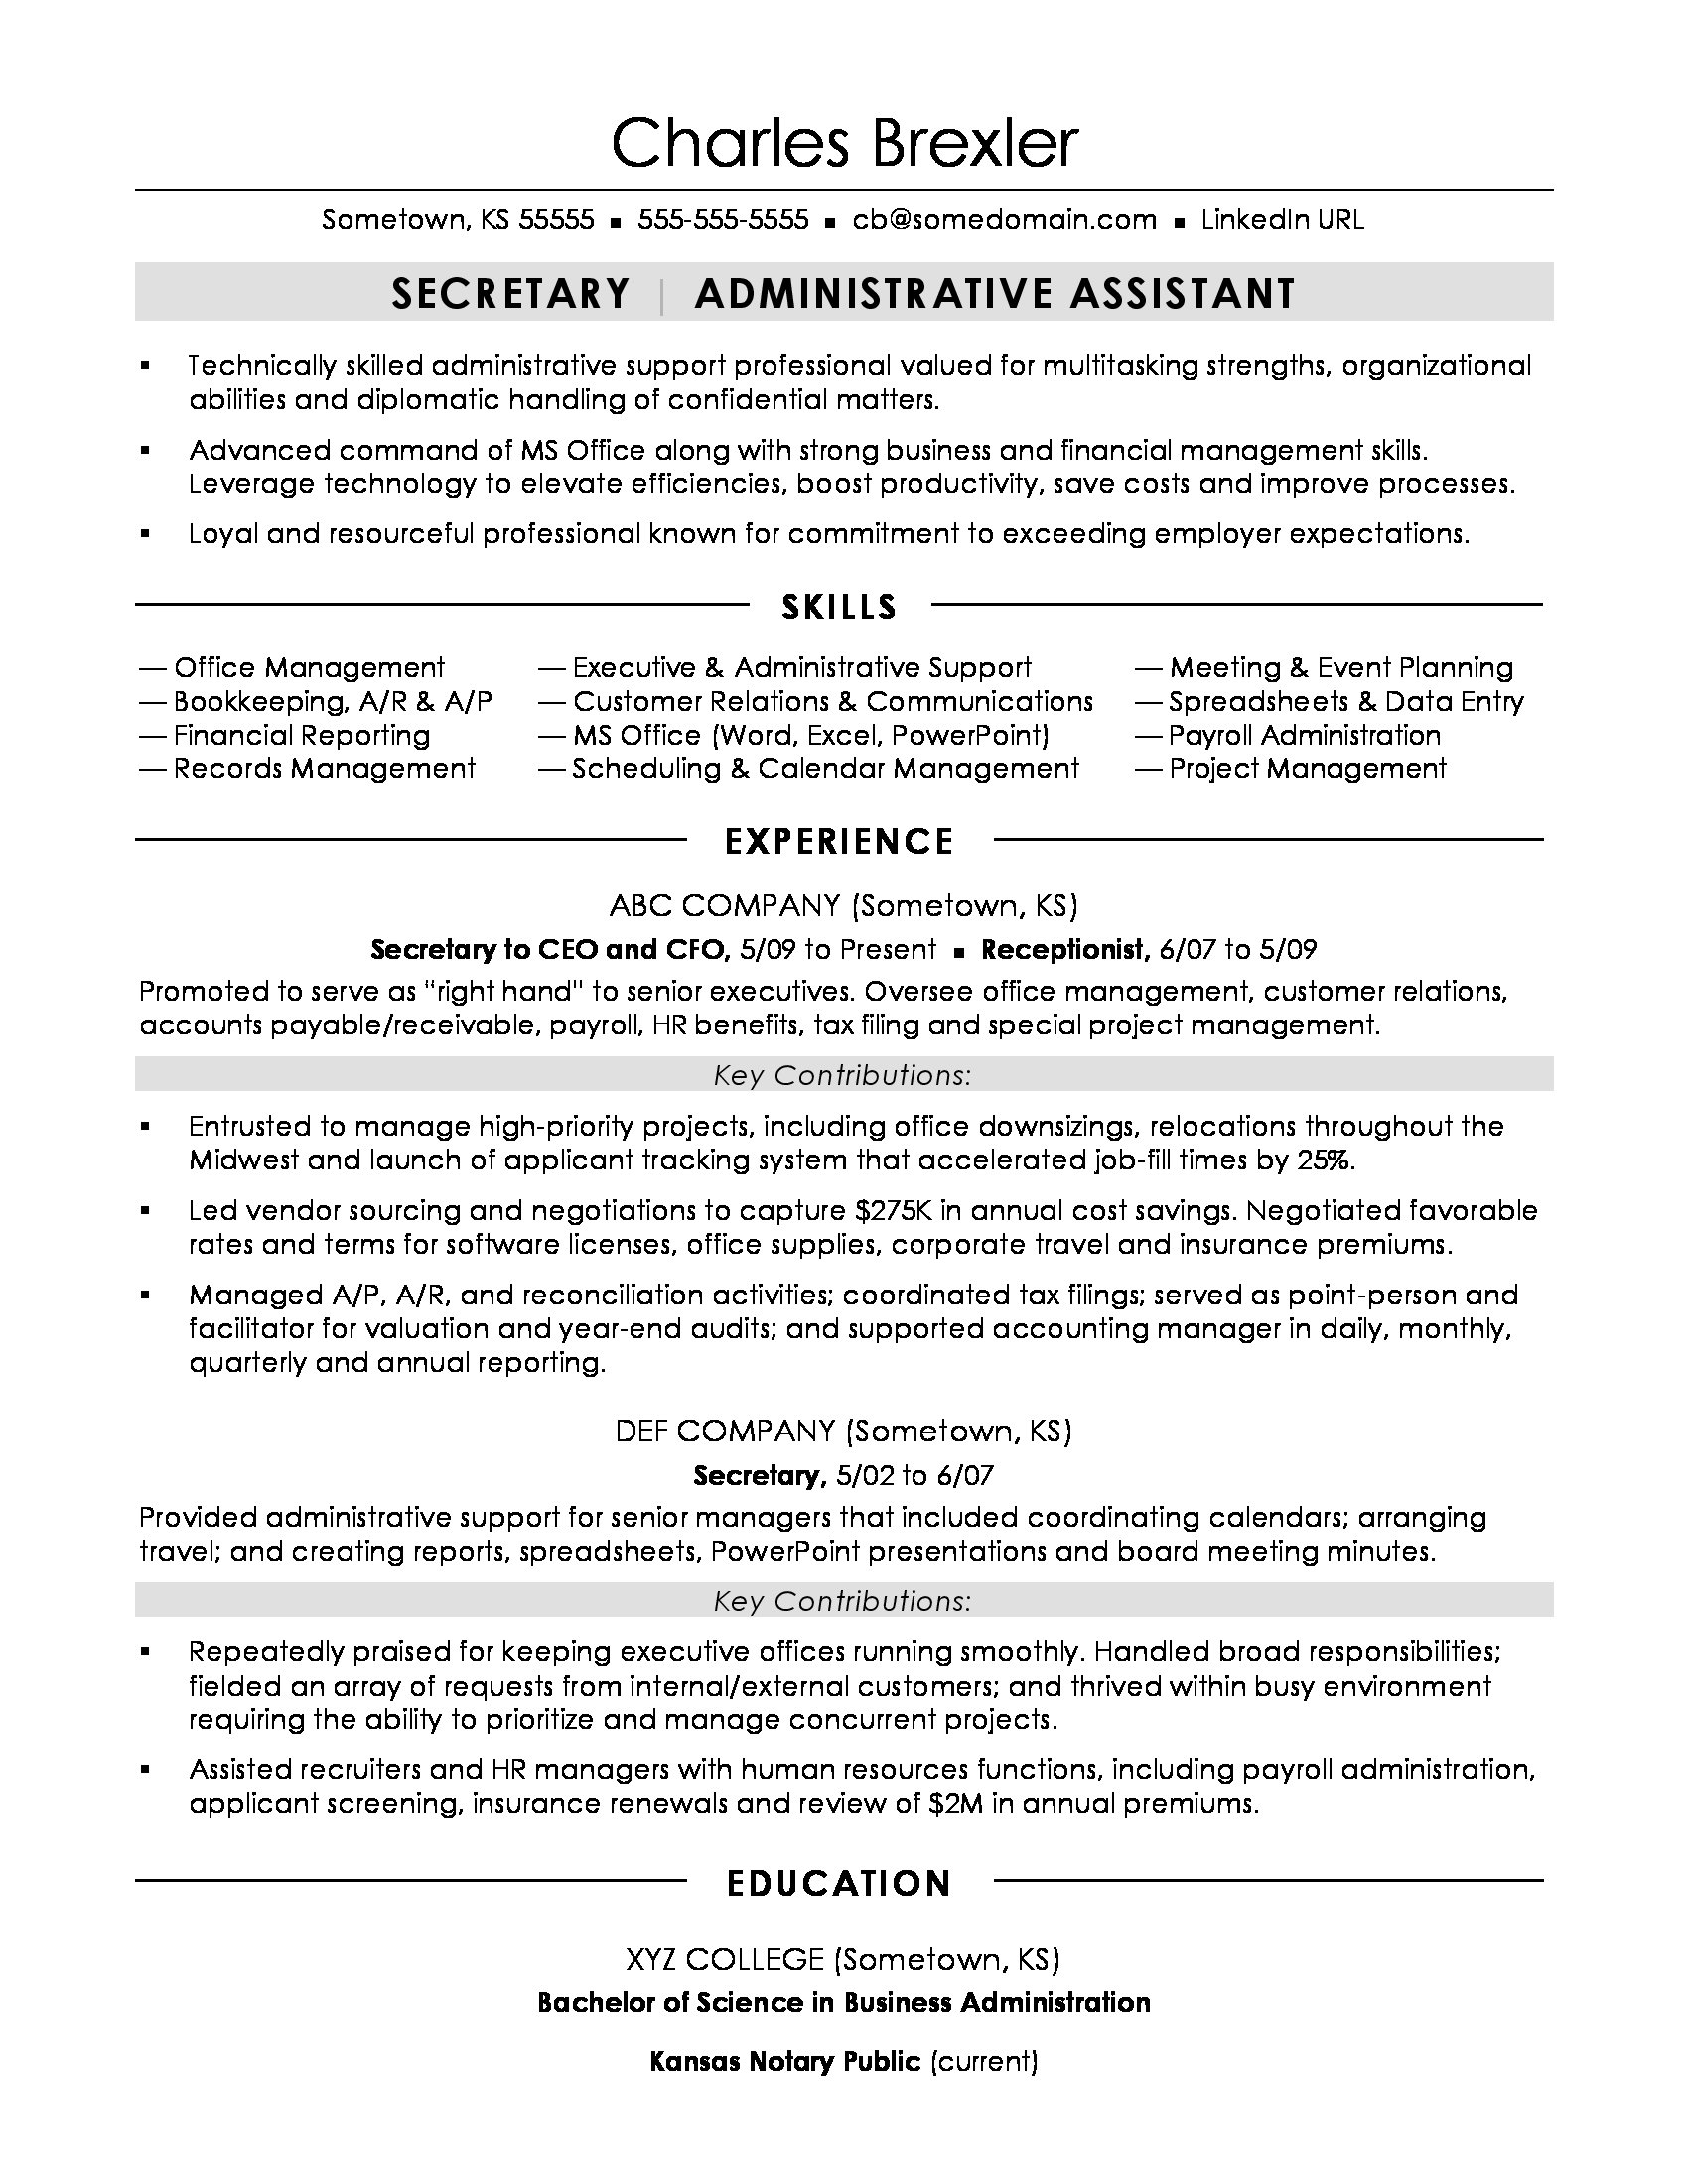 Secretary Resume Sample  Office Management Resume